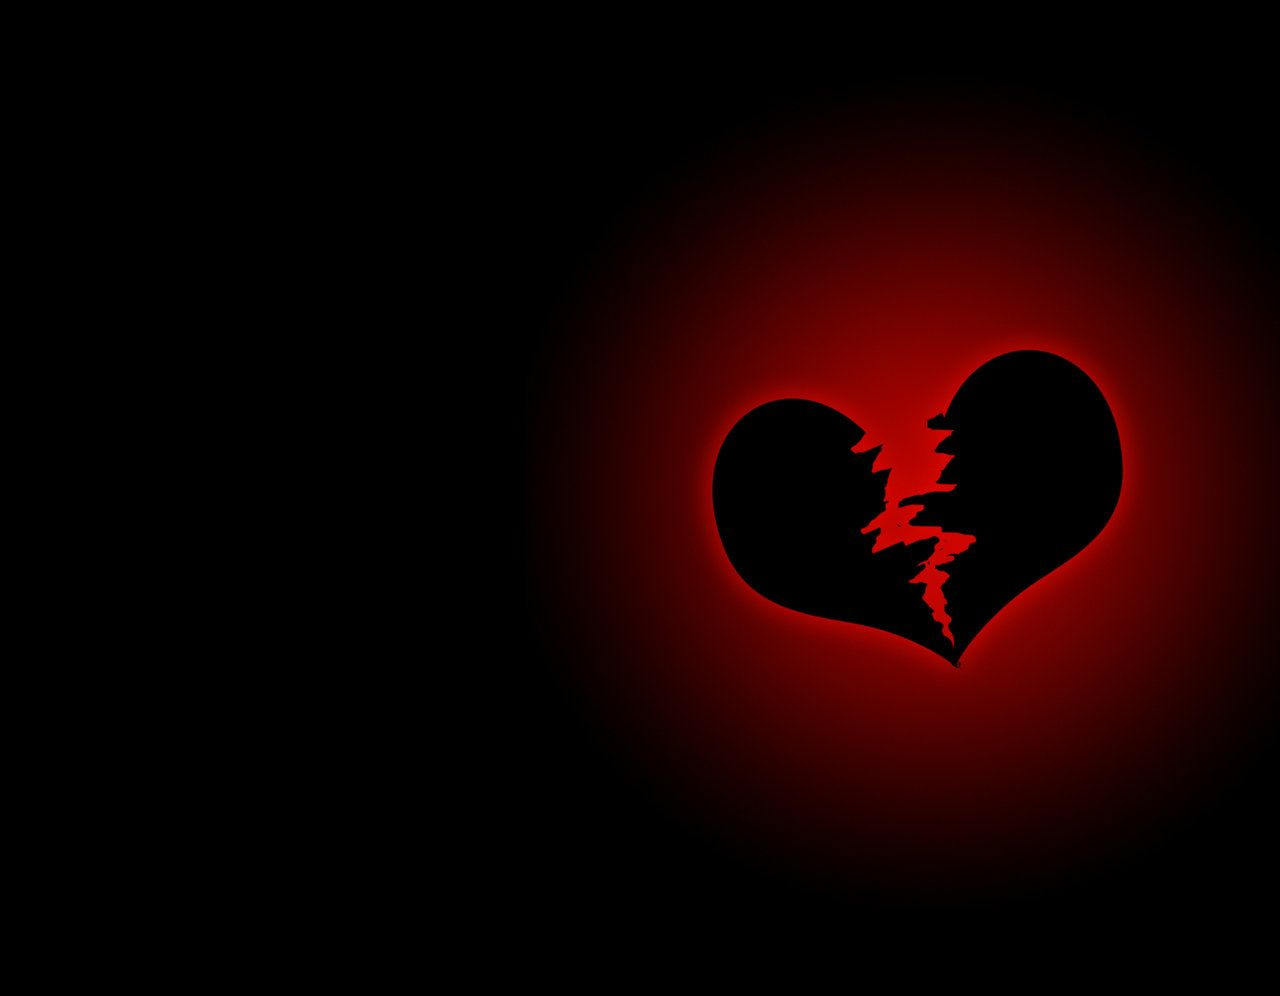 Broken Heart Sad Quotes With Pictures And Wallpapers Hd Pics